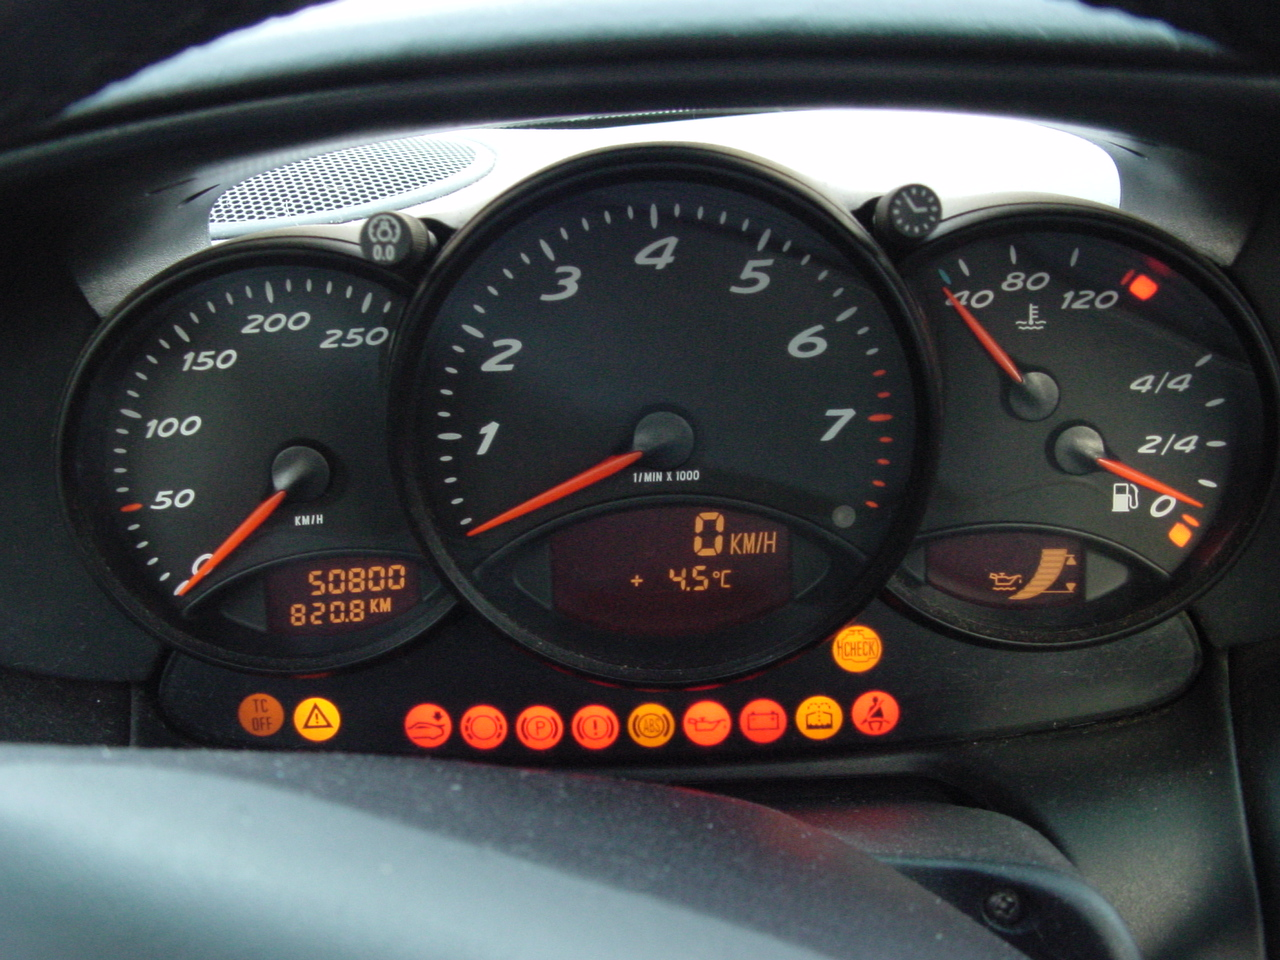 File Porsche 986 Boxster Gauges Jpg Wikimedia Commons